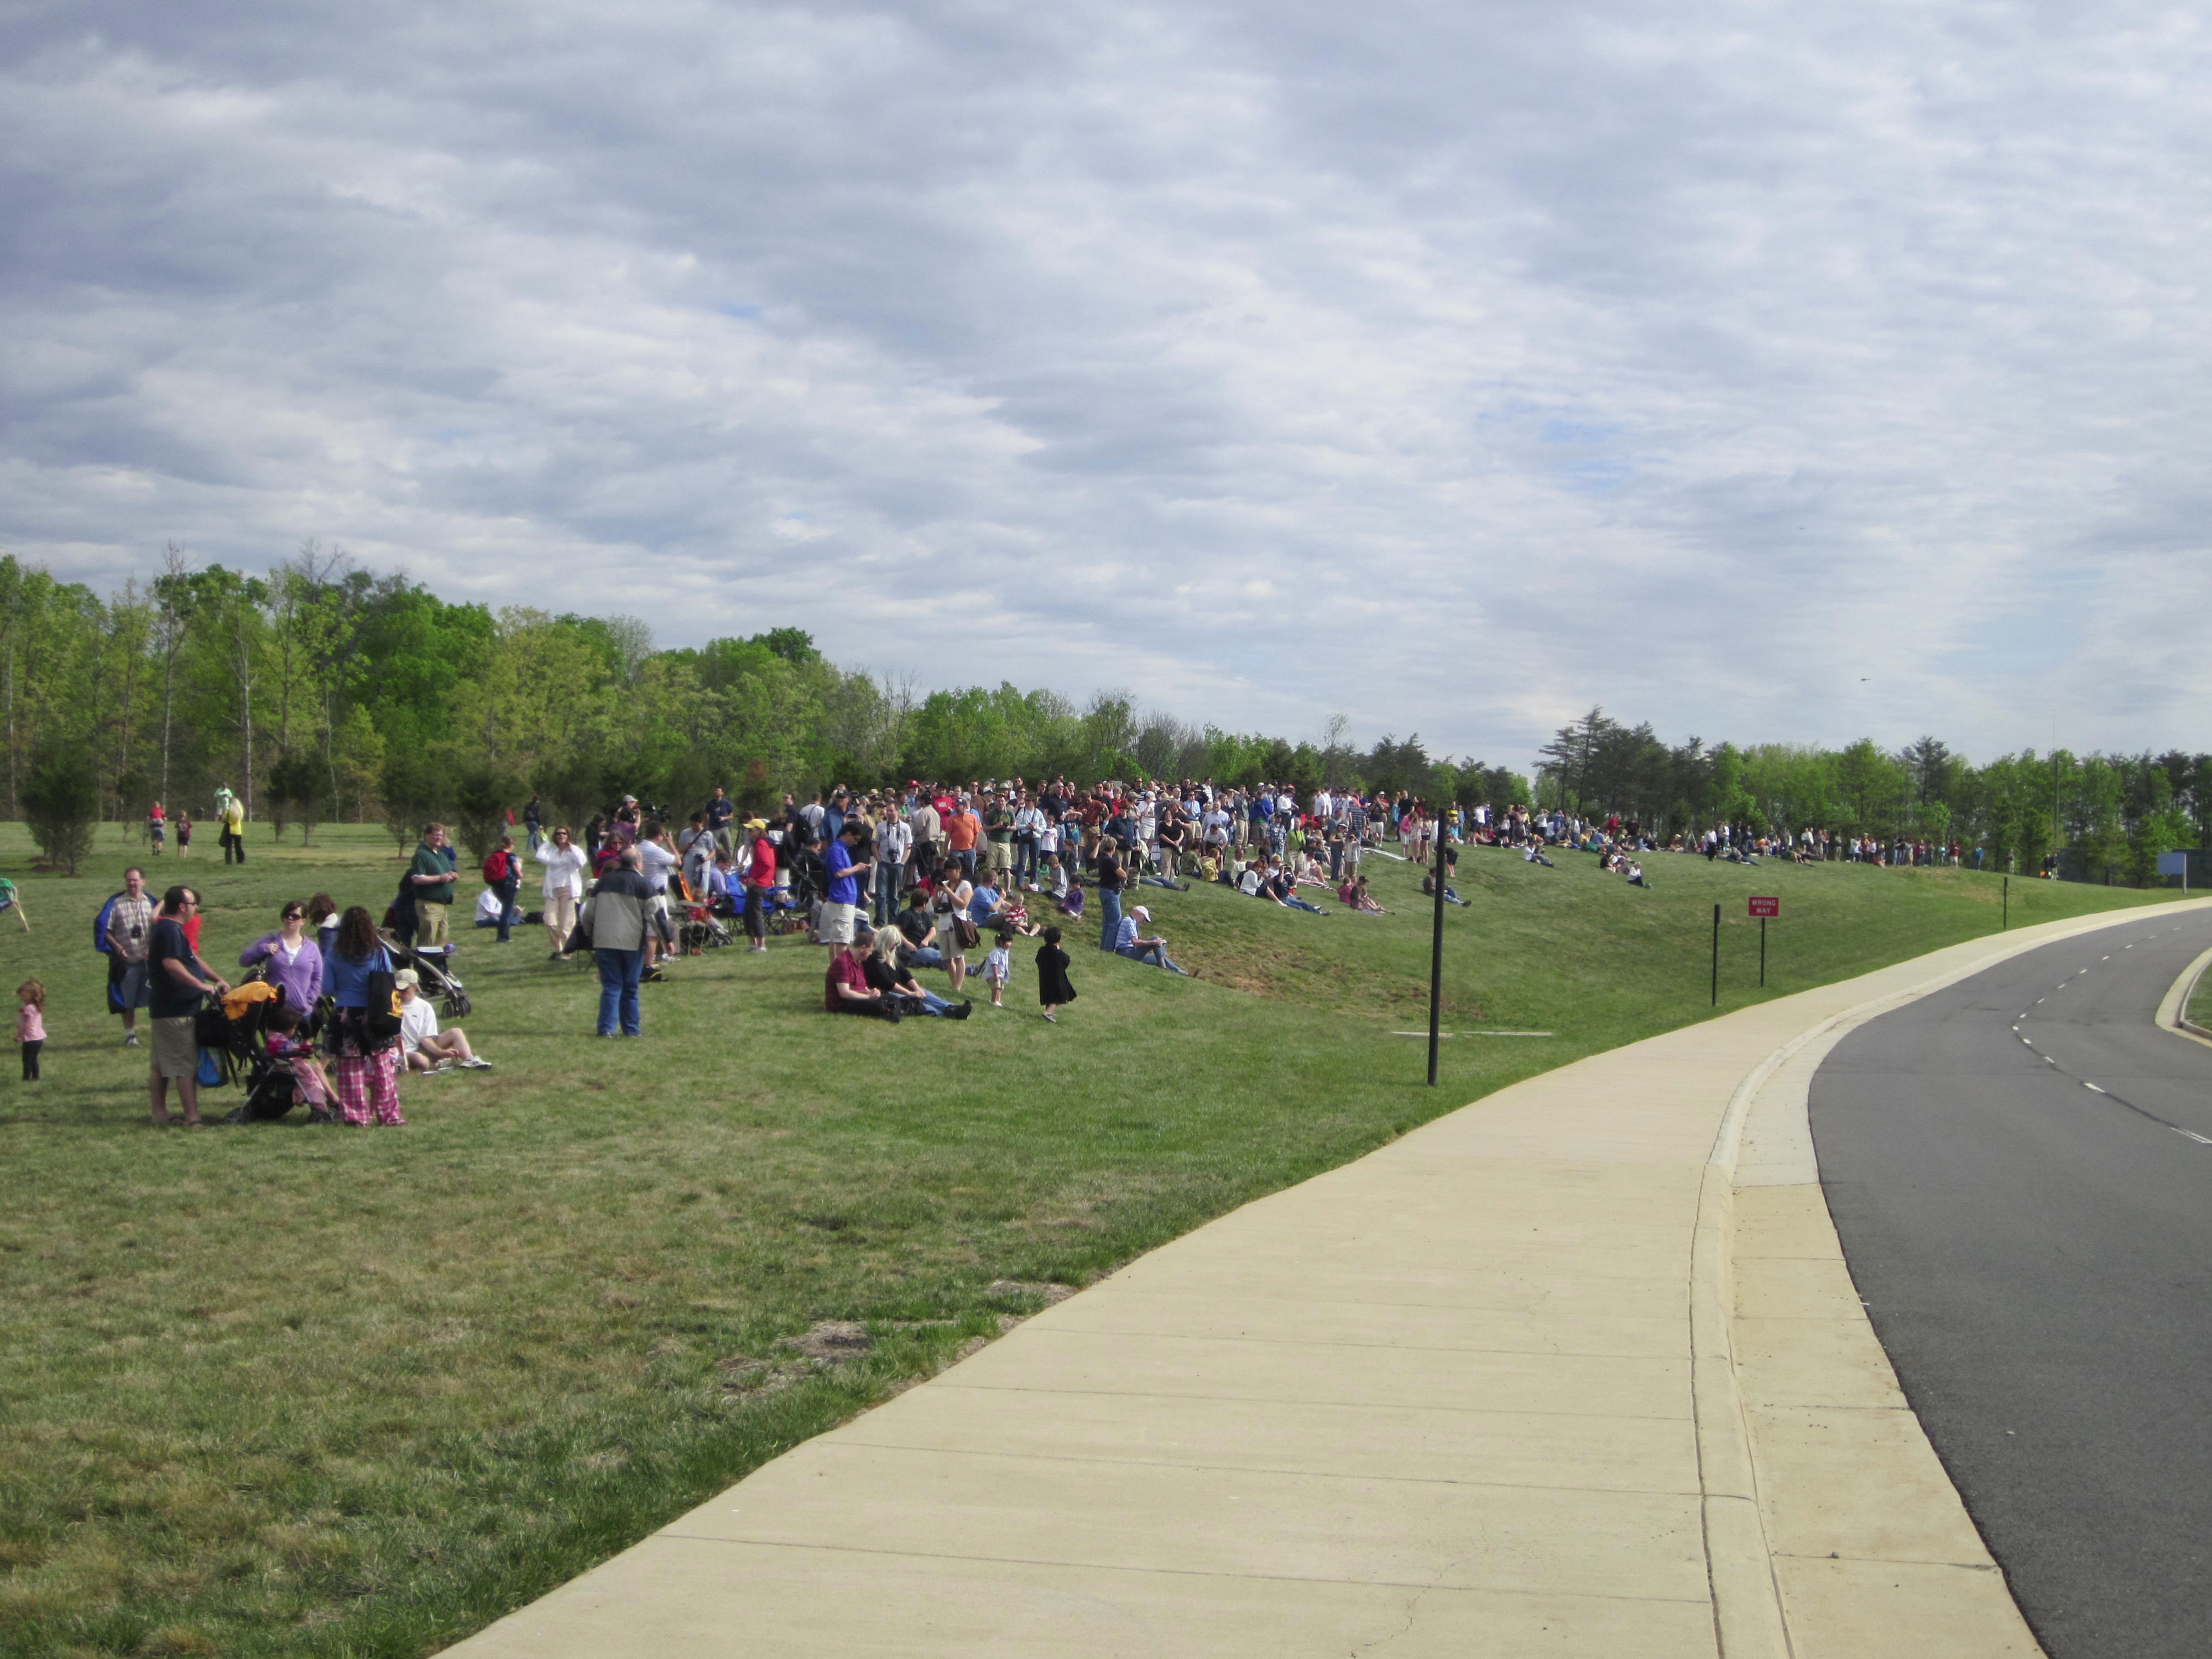 Eager Crowds Await the Flyover of Discovery at the Udvar-Hazy Center